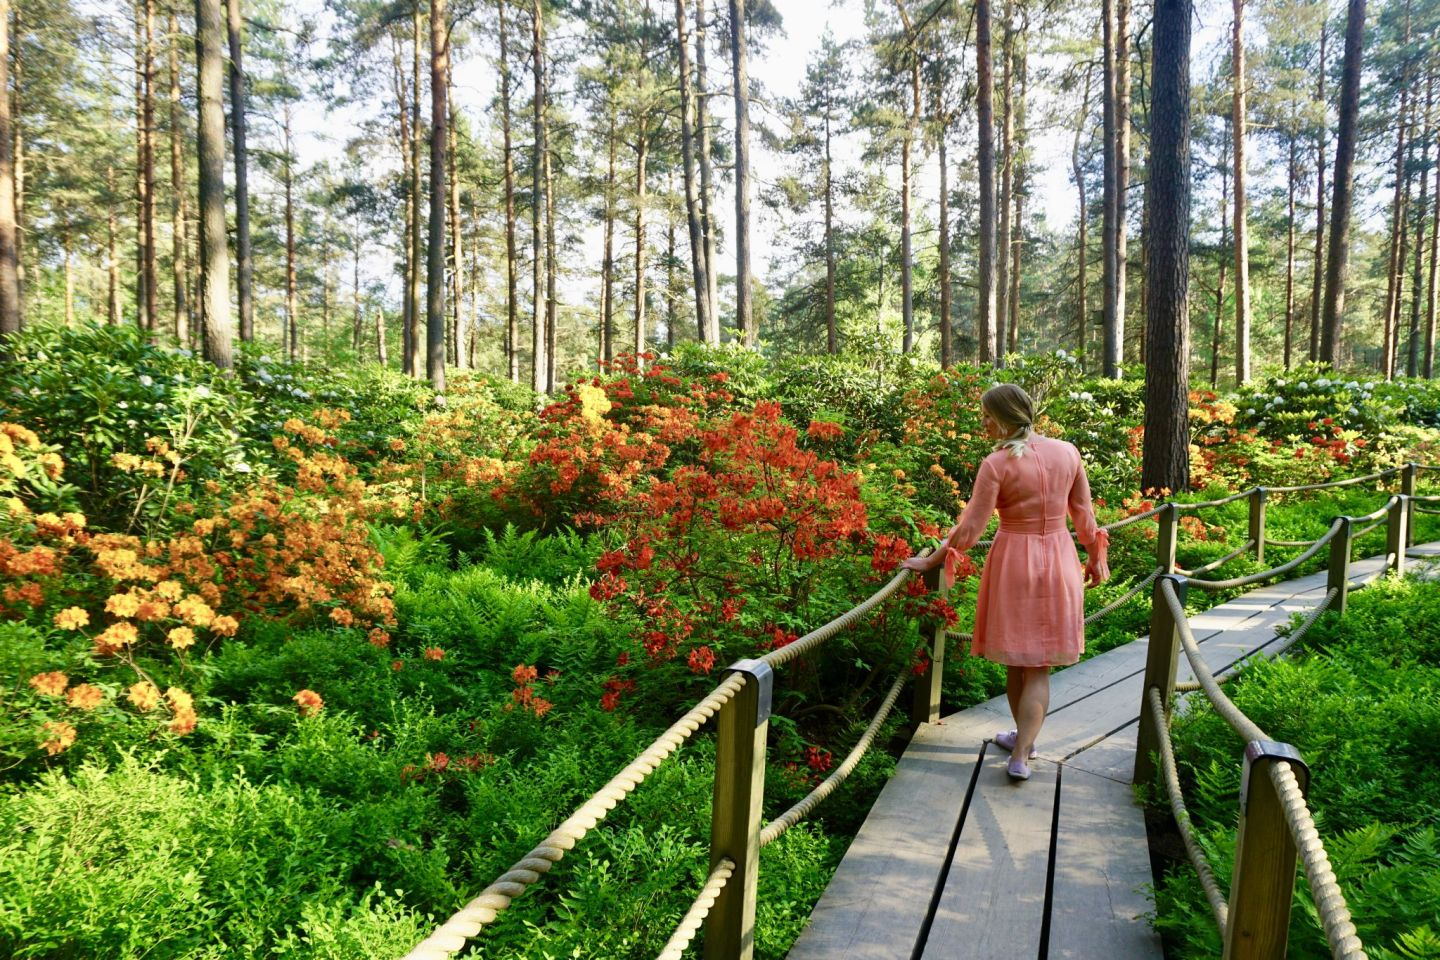 How to visit the Rhododendron Park in Helsinki